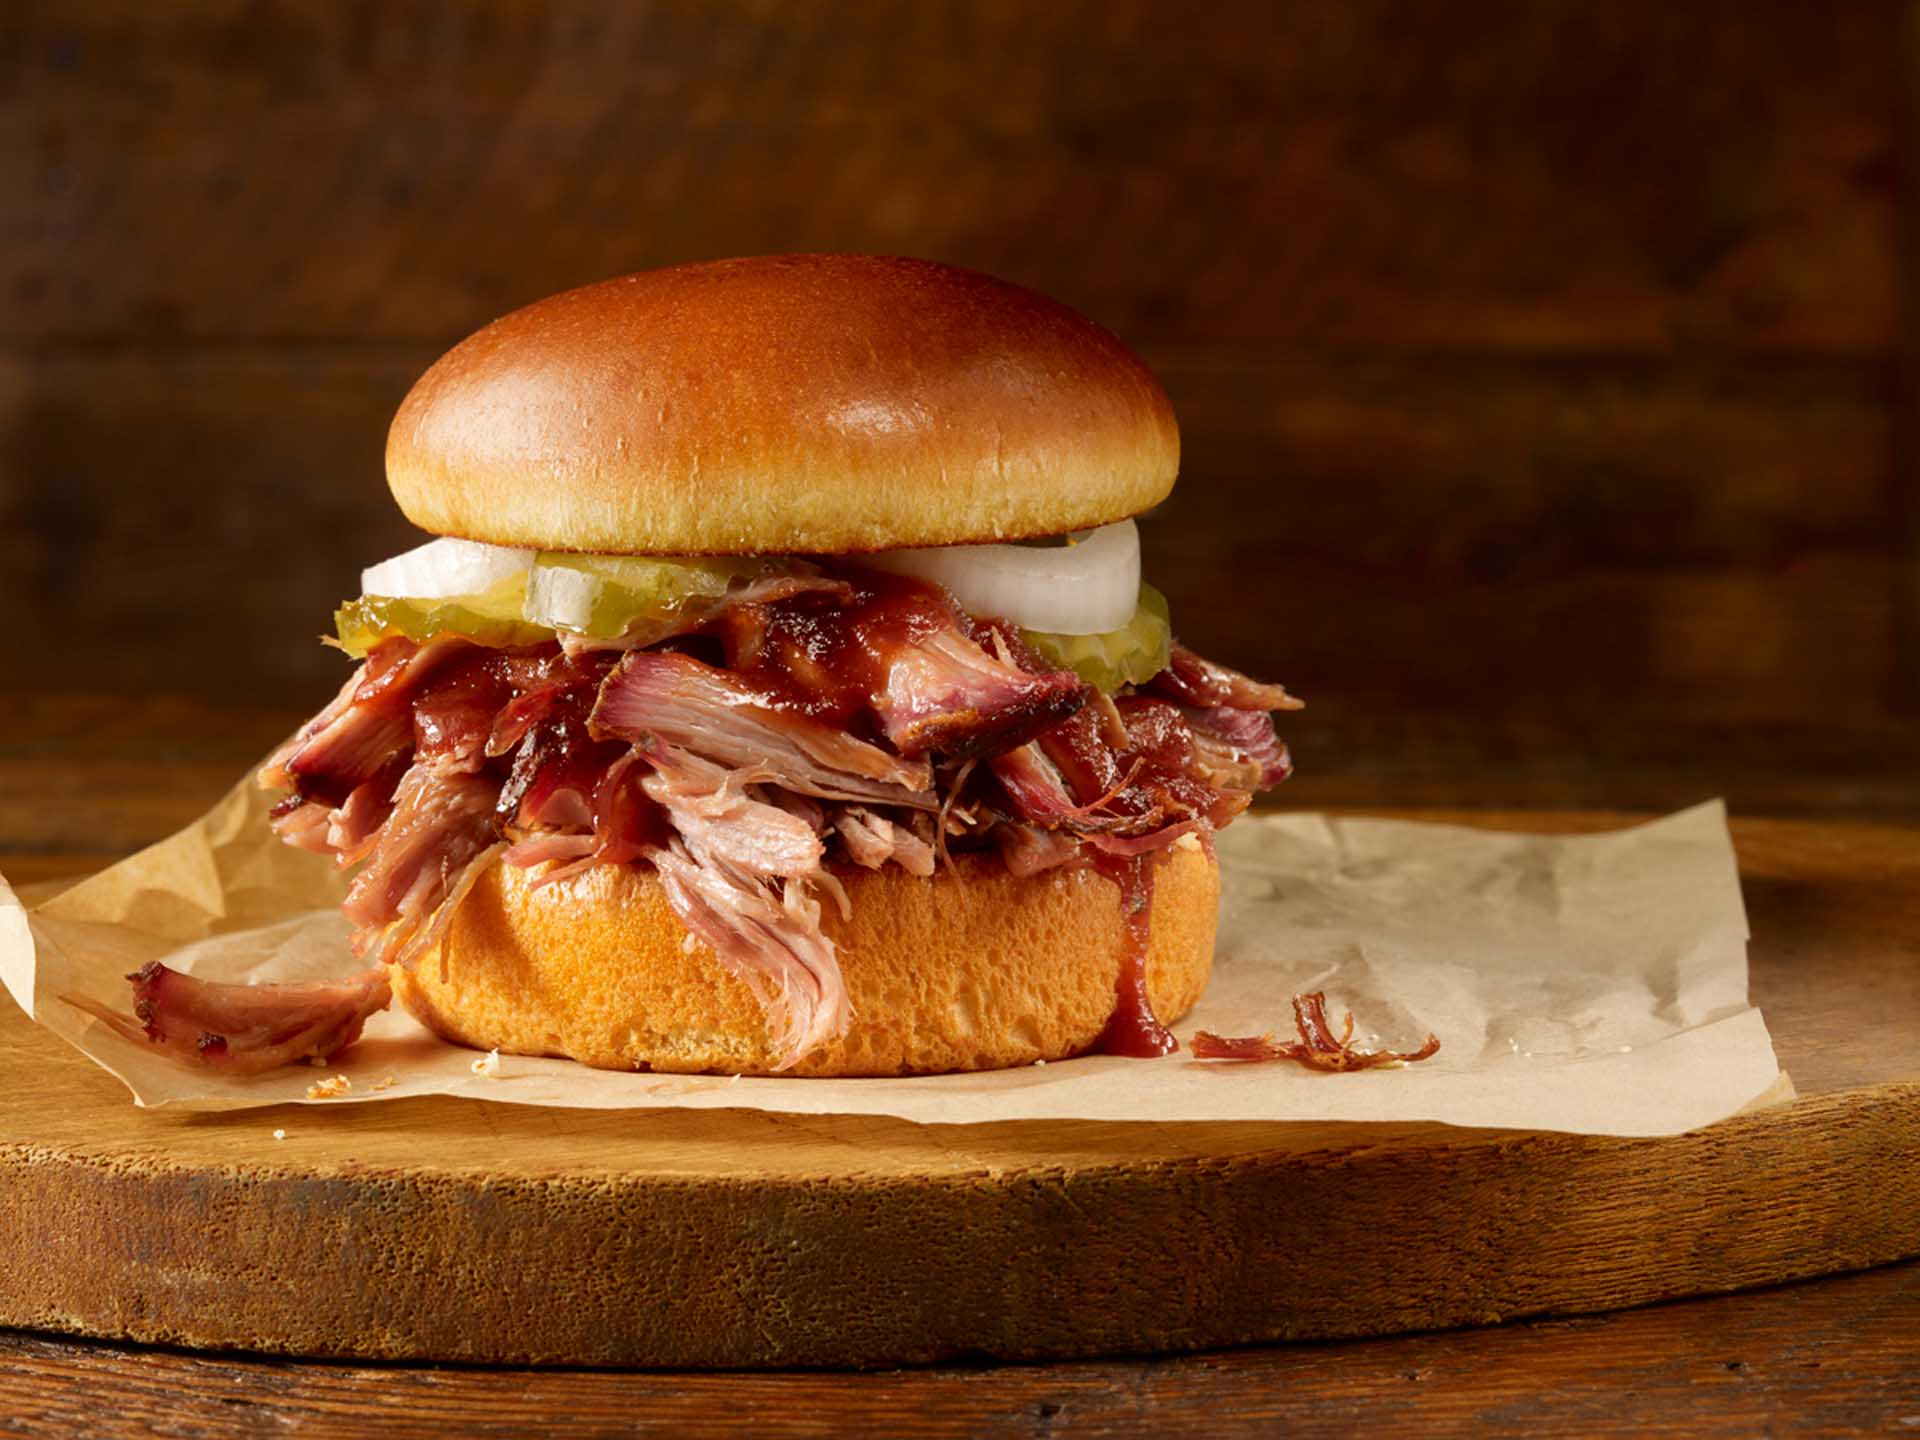 Acadiana Advocate: Coming to Carencro, Dickey's Barbecue Pit